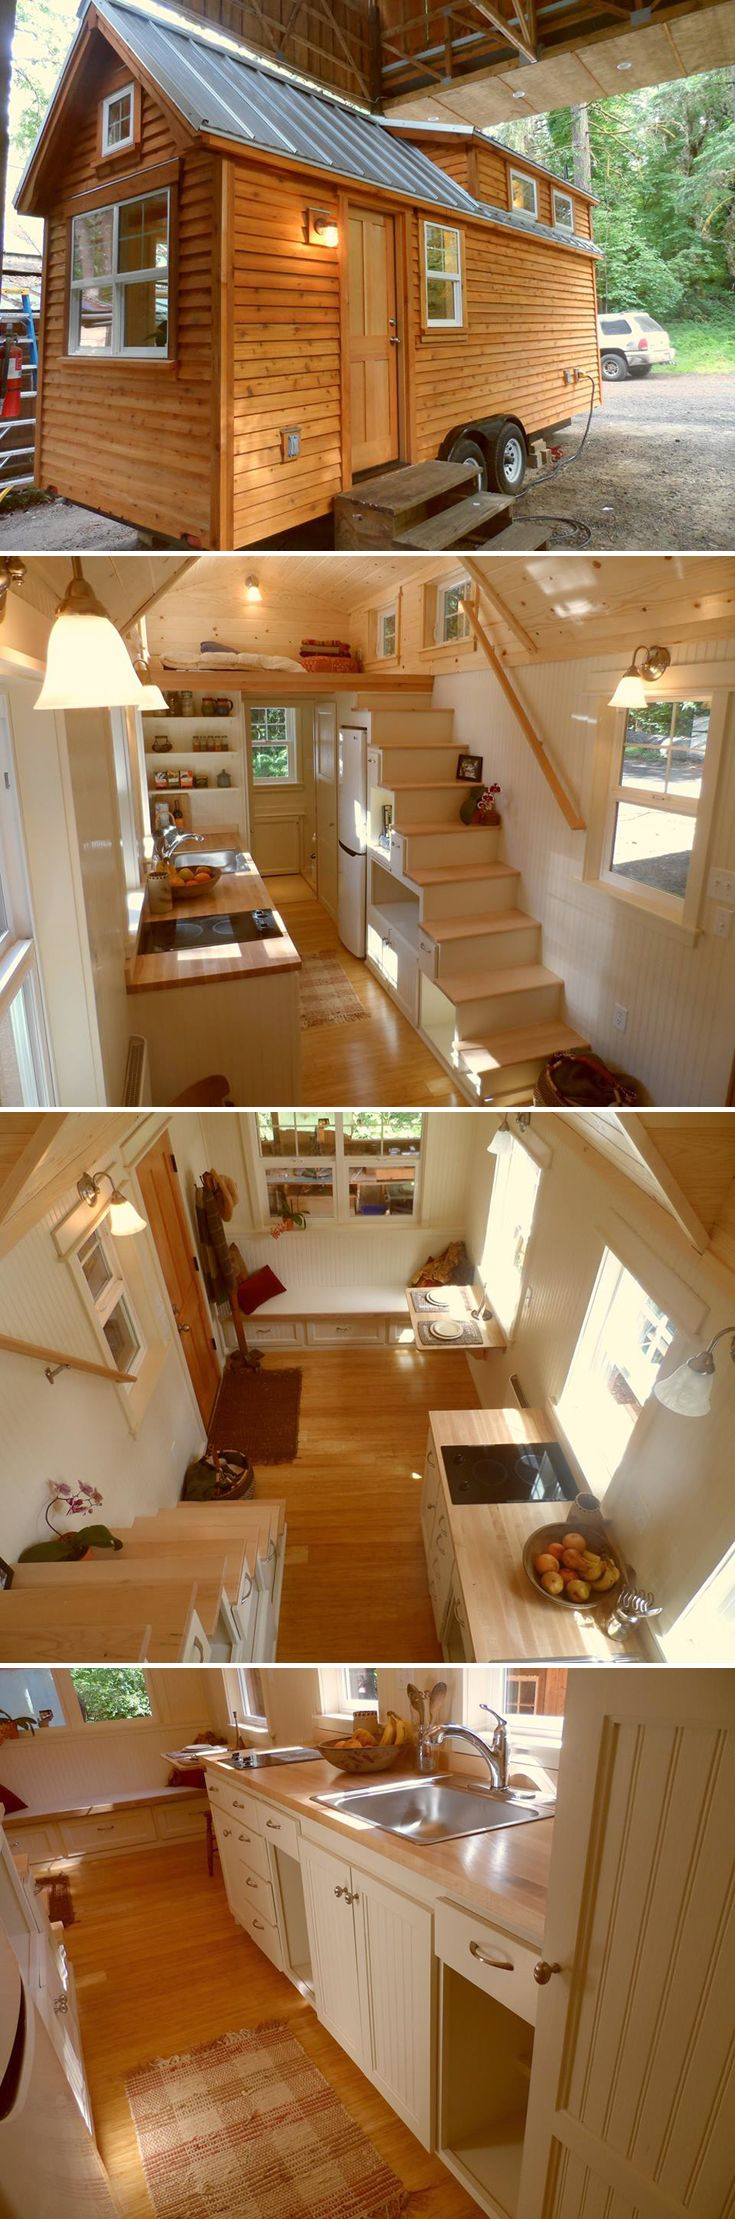 This customized 22' Ynez tiny house features tansu storage stairs with maple treads, bamboo flooring, and bead board wall paneling.